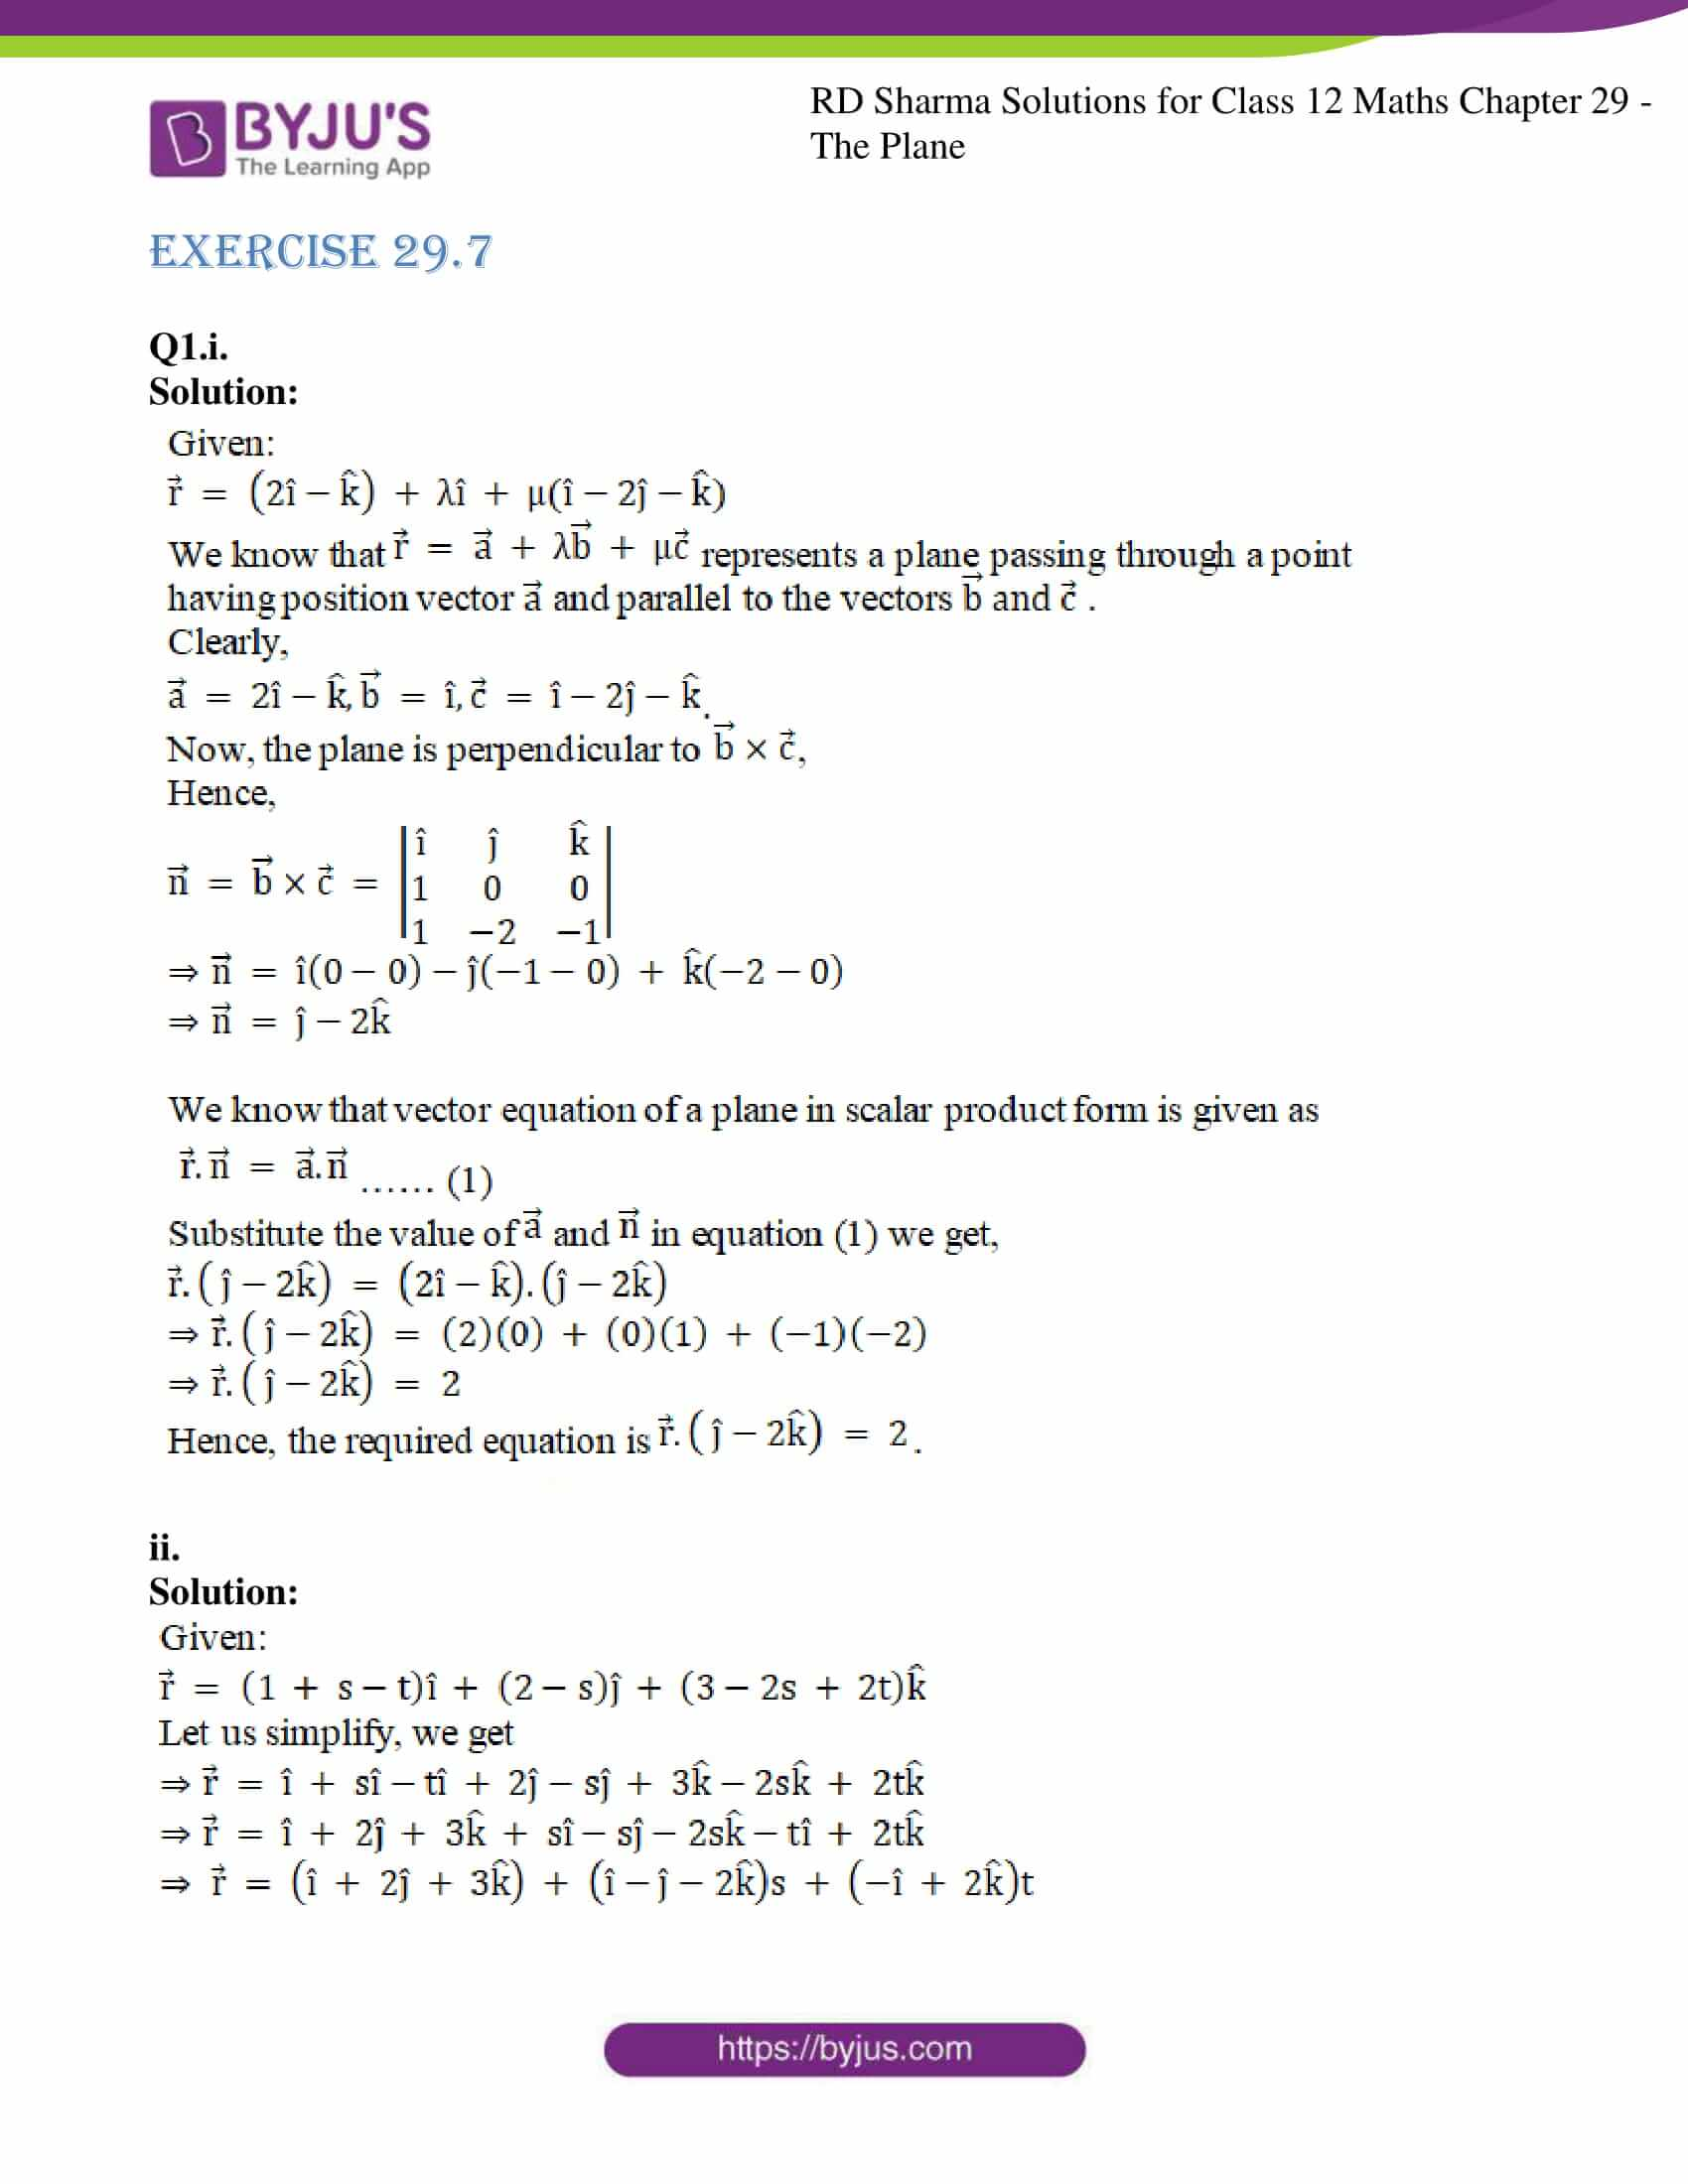 rd sharma solutions for class 12 maths chapter 29 ex 7 1